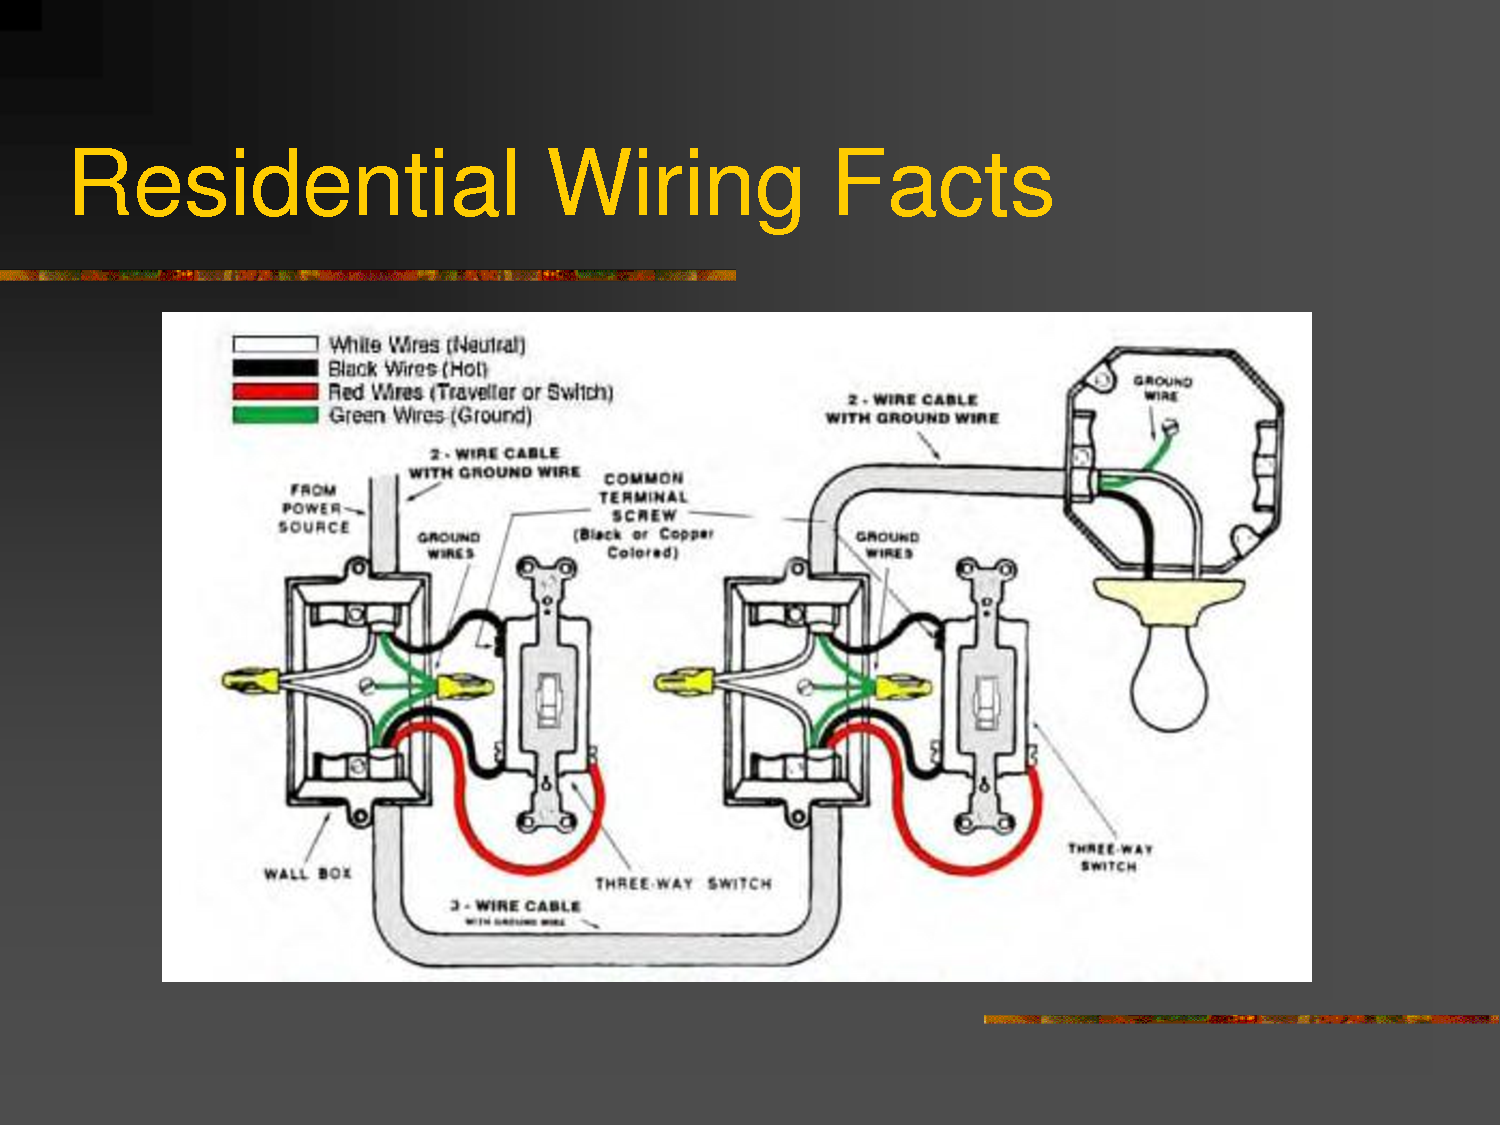 85f6d7068dddf27aa5737fc68962f04e 4 best images of residential wiring diagrams house electrical home wiring basics with illustrations at bayanpartner.co